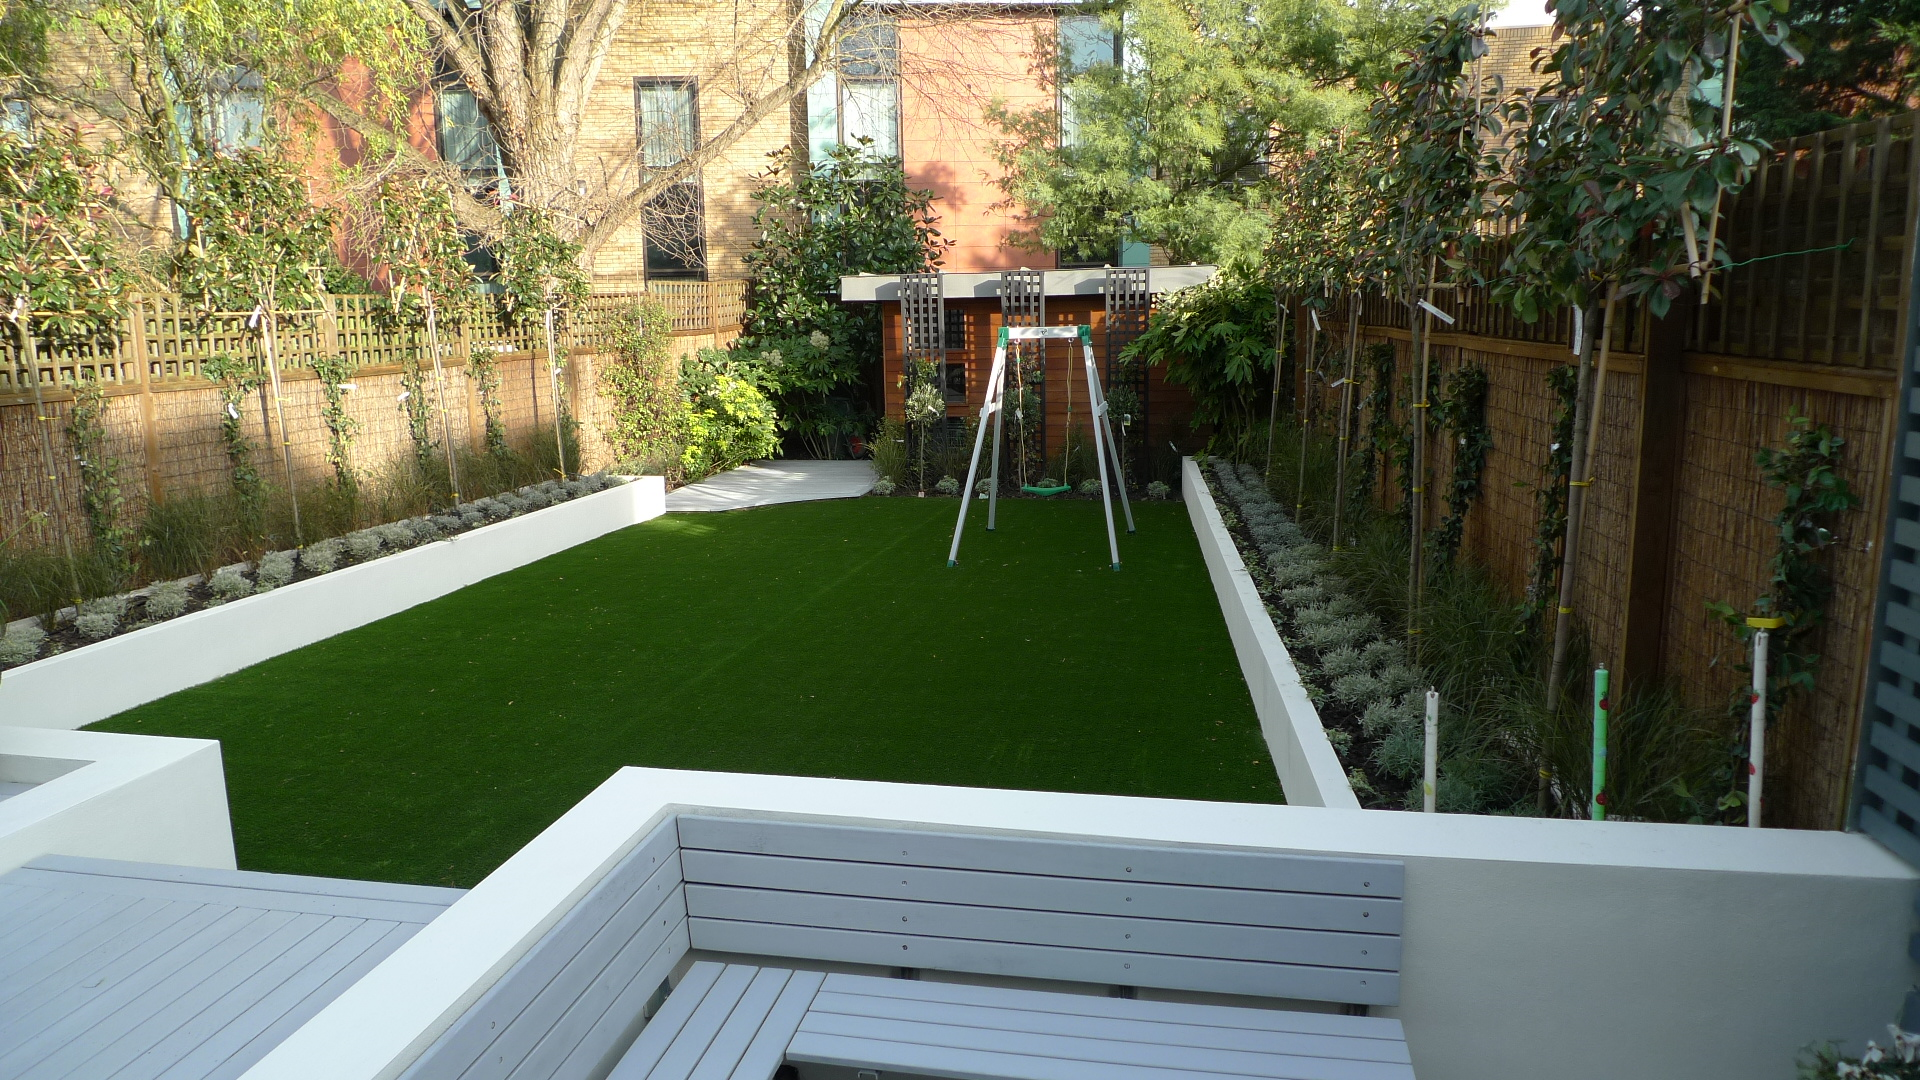 Modern garden design ideas london london garden design for Modern garden ideas